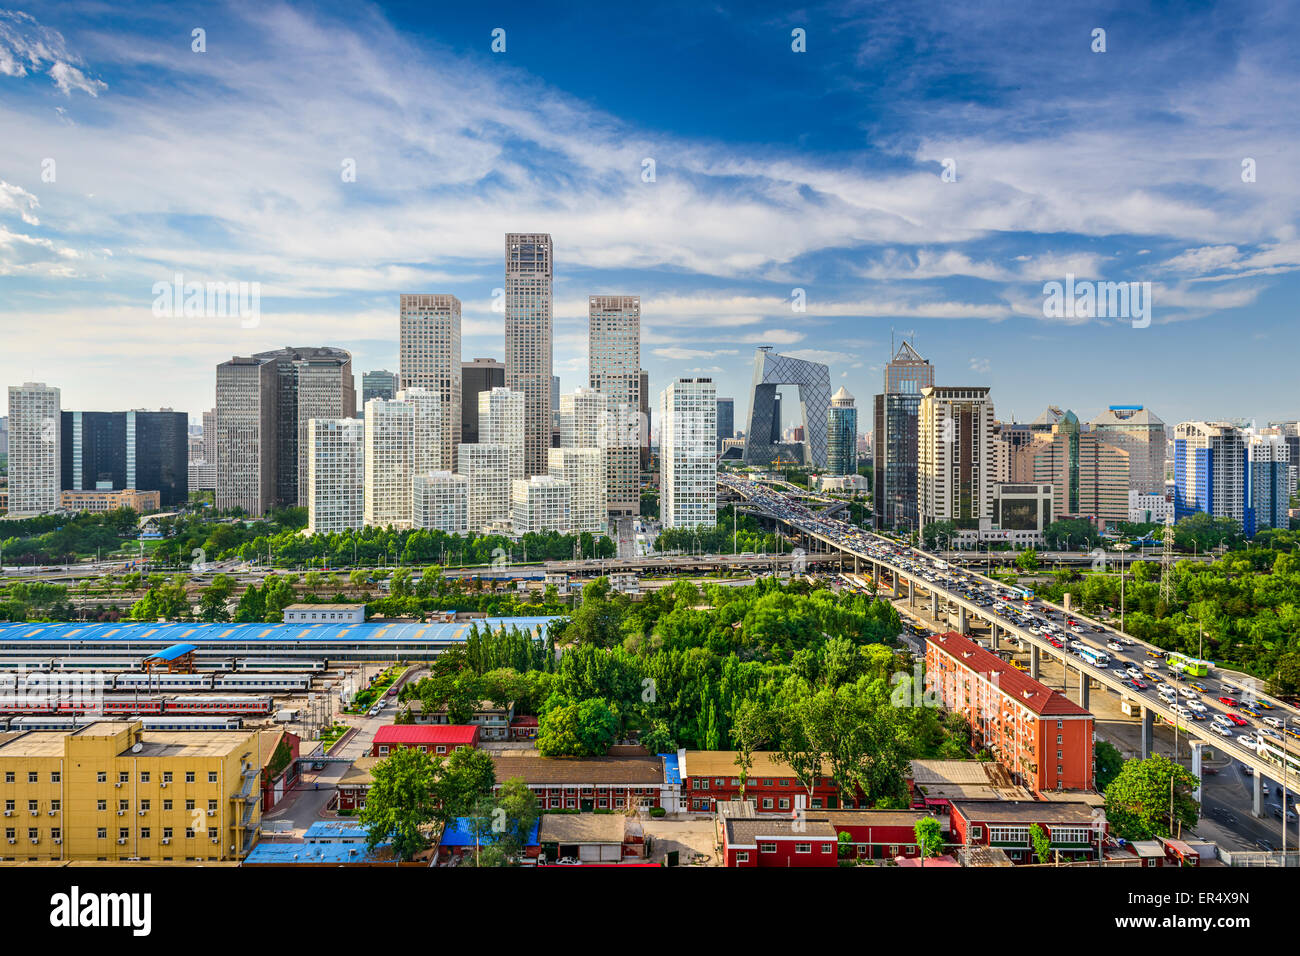 Pechino, Cina skyline di CBD. Foto Stock